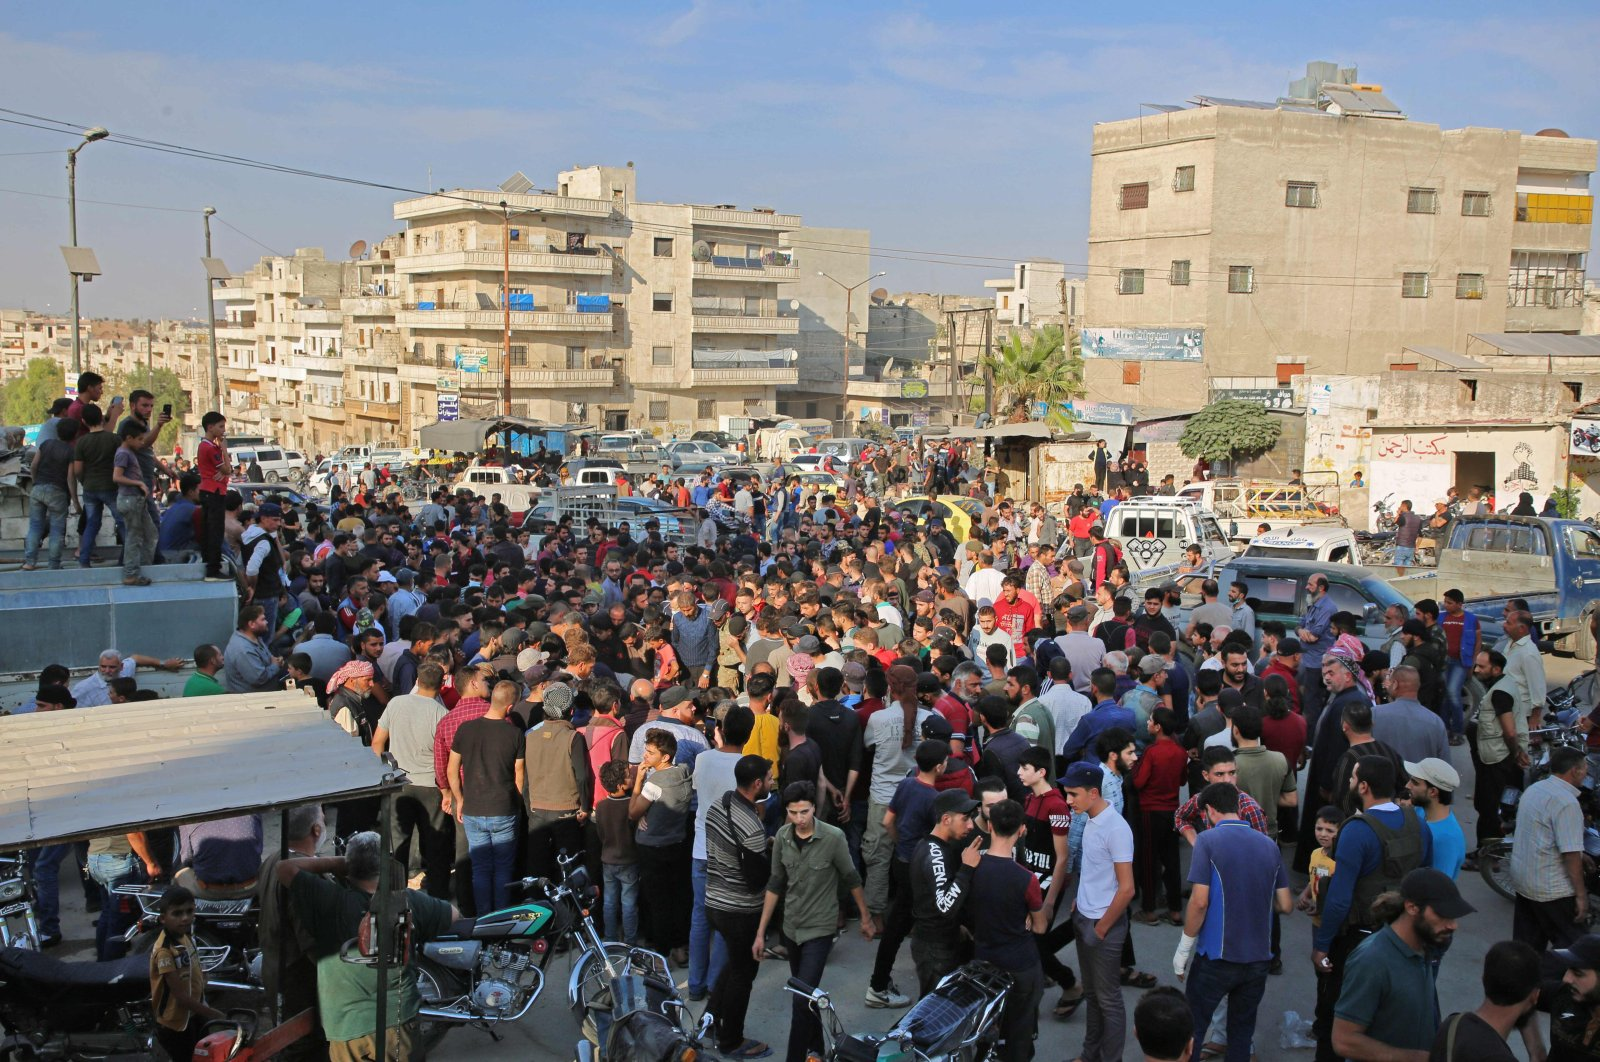 Syrians take part in the funeral of soldiers of the Faylaq al-Sham opposition faction in Syria, in the northwestern city of Idlib, on October 26, 2020, following their death in a Russian air strike. (AFP Photo)